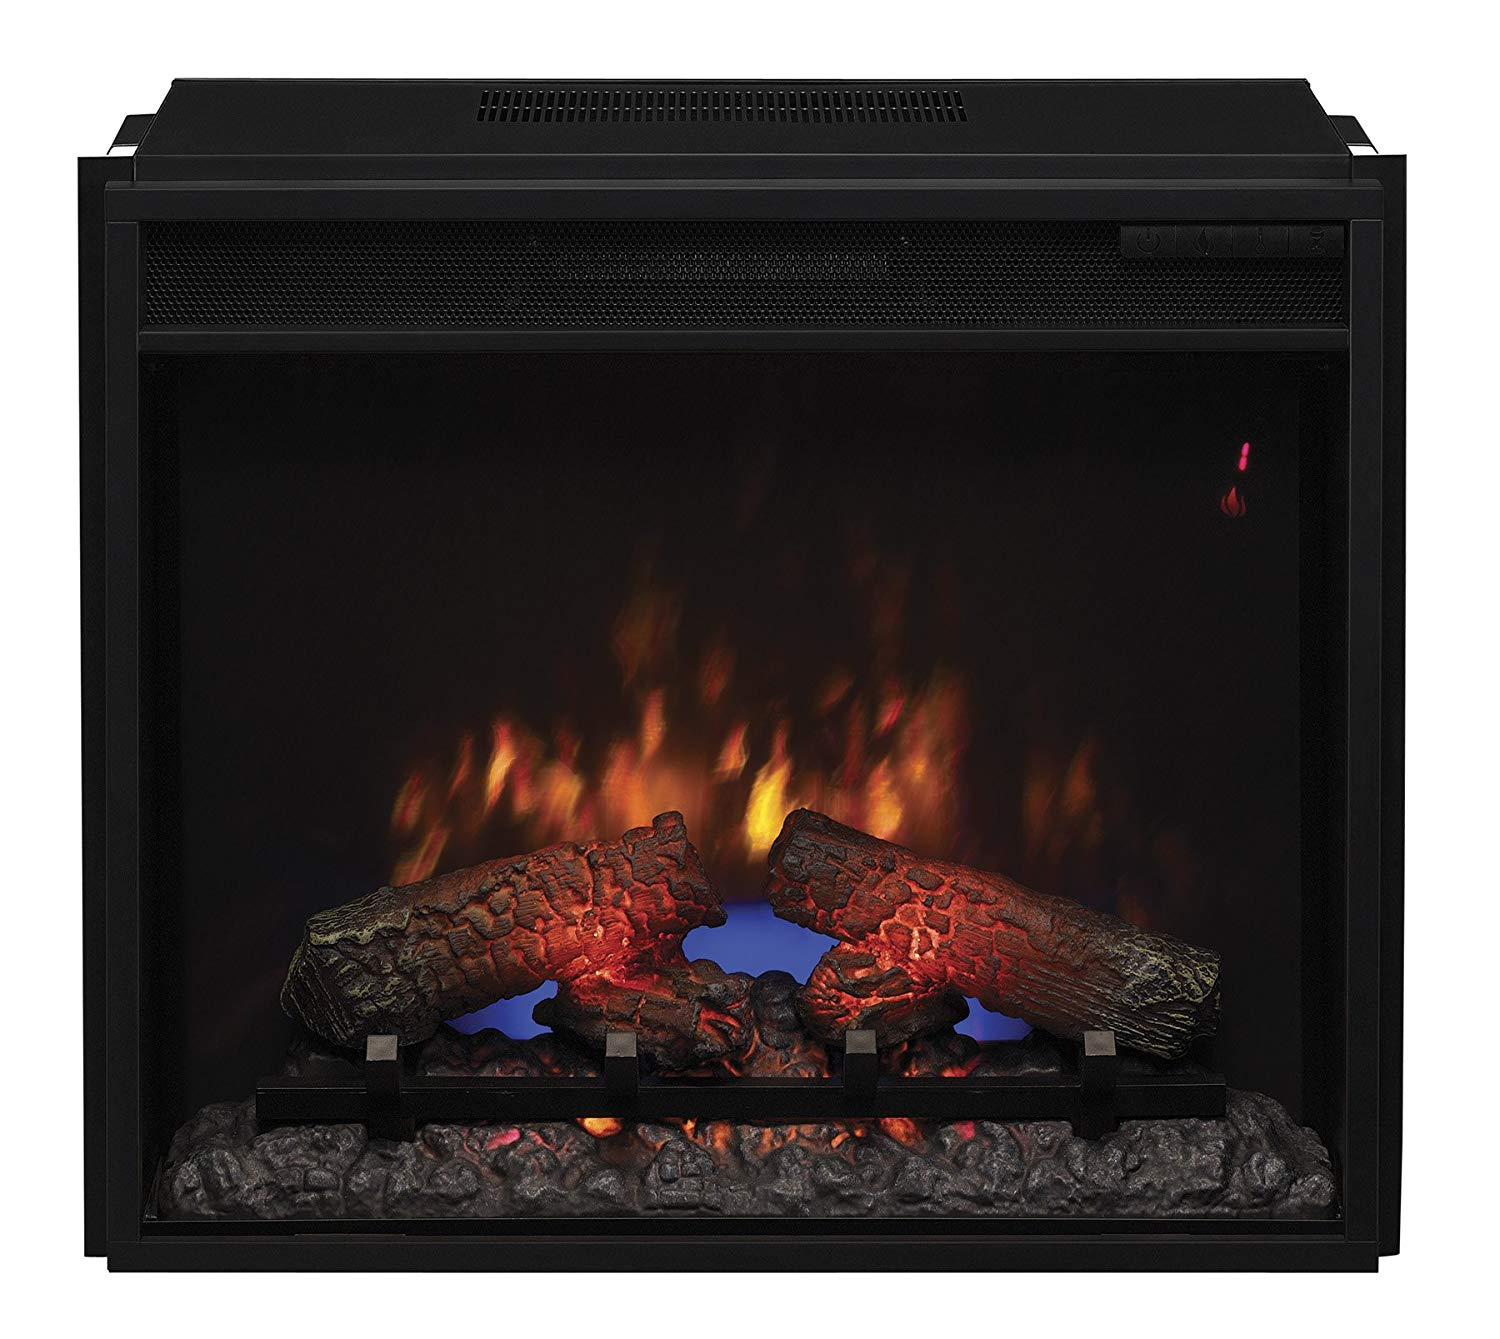 "Classic Flame Electric Fireplace Manual Awesome Classicflame 23ef031grp 23"" Electric Fireplace Insert with Safer Plug"